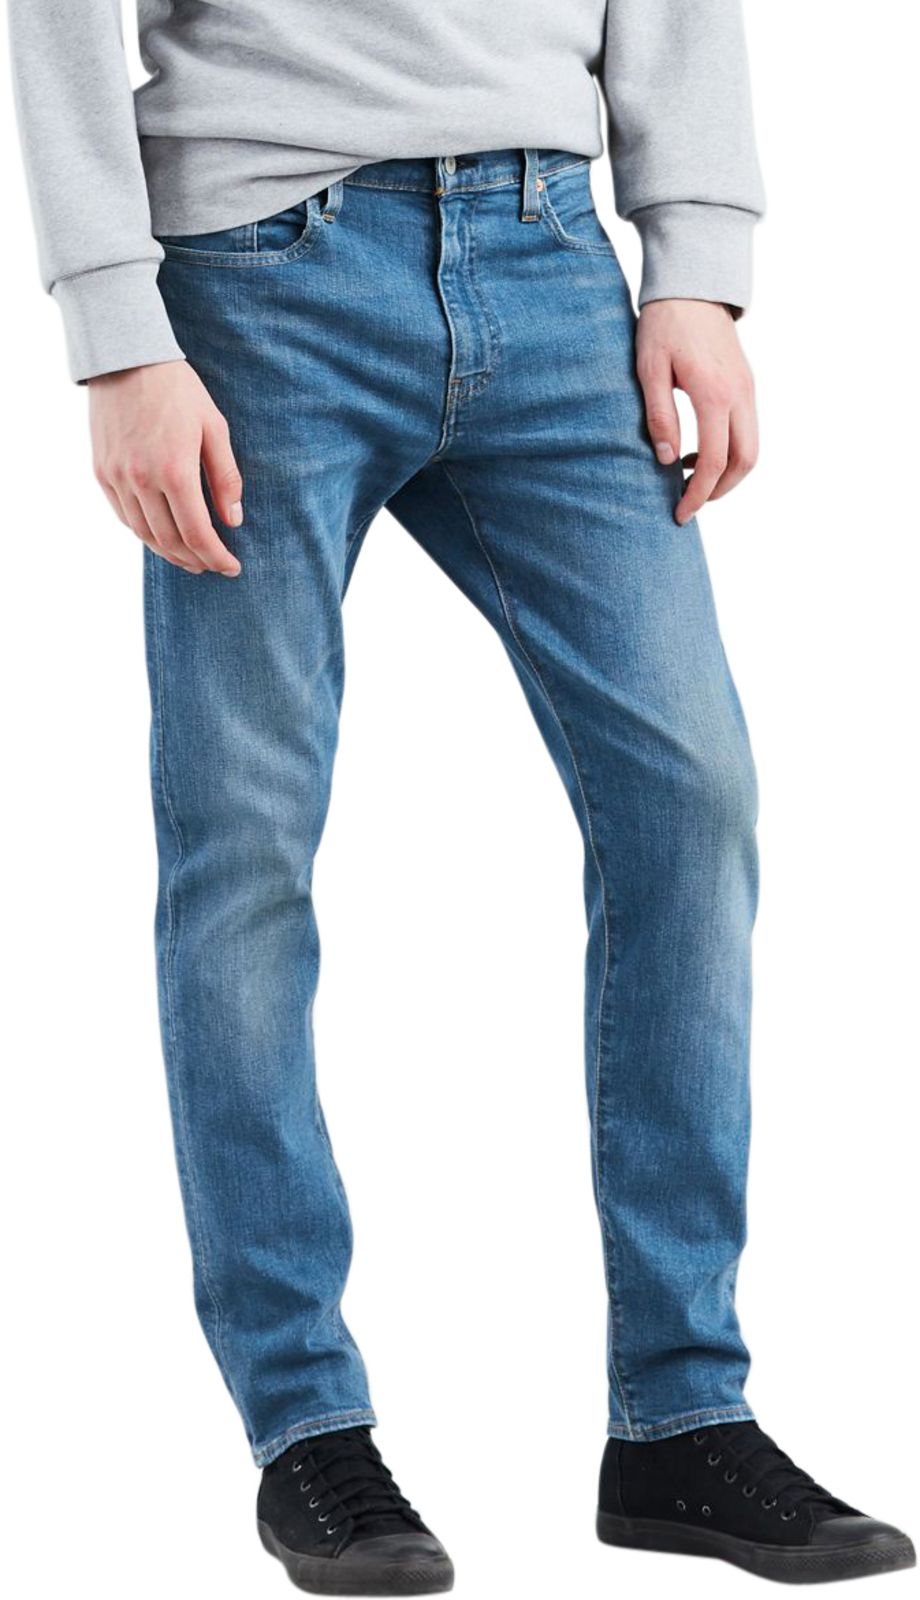 Levi's 512 Slim Denim Jeans Blue